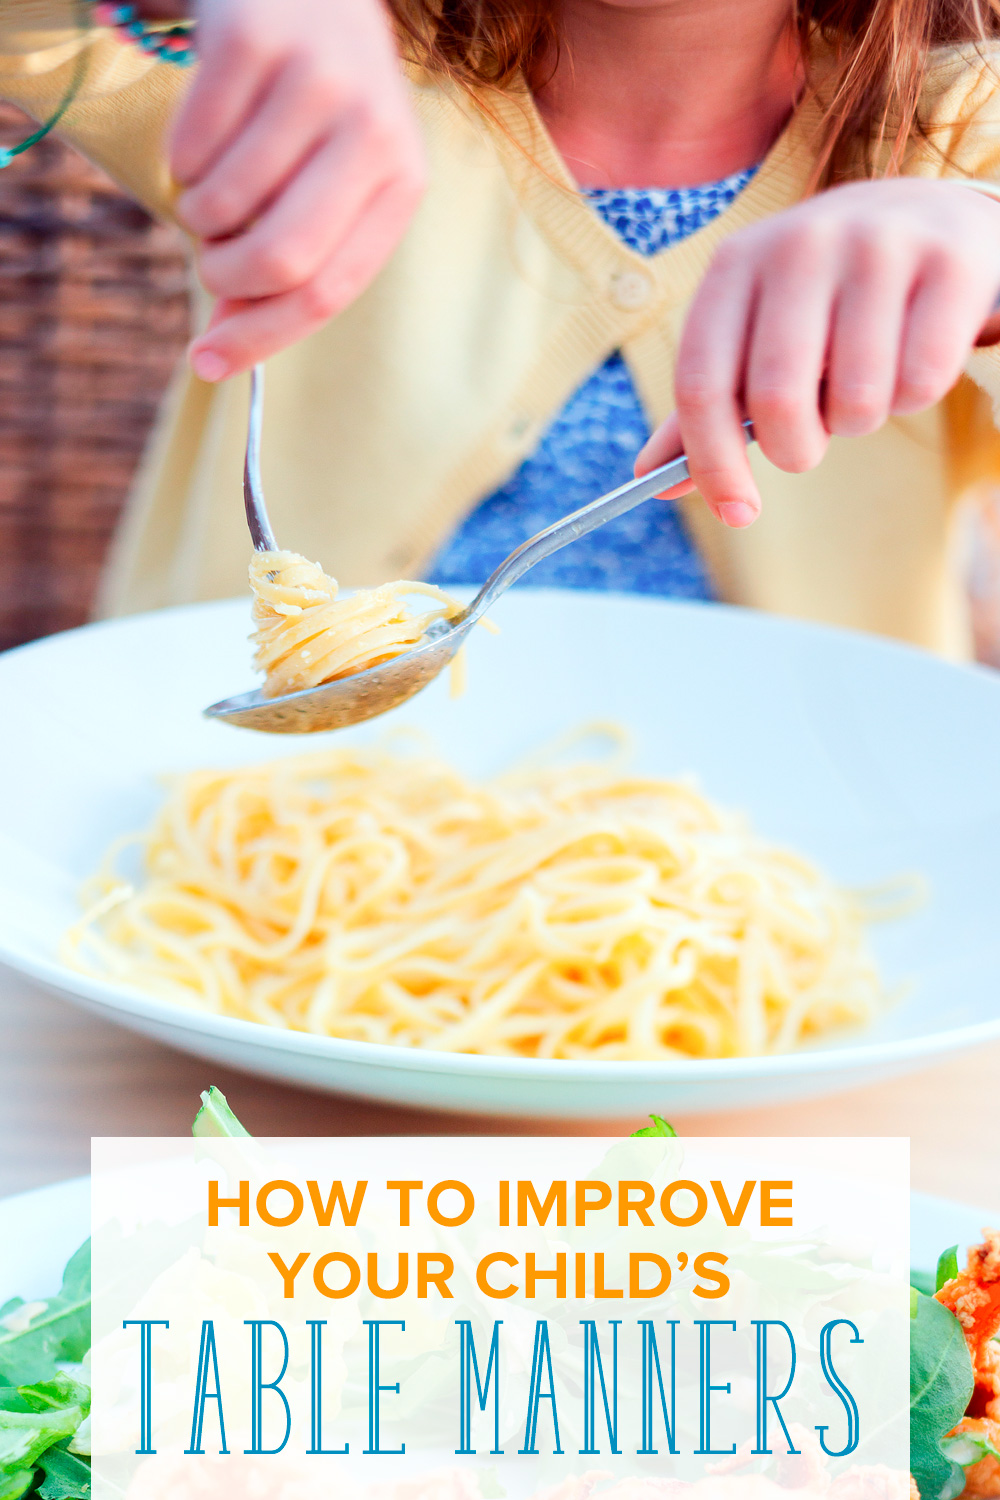 Learn how to improve table manners for children. Get ideas on creating a positive dining experience for the whole family.